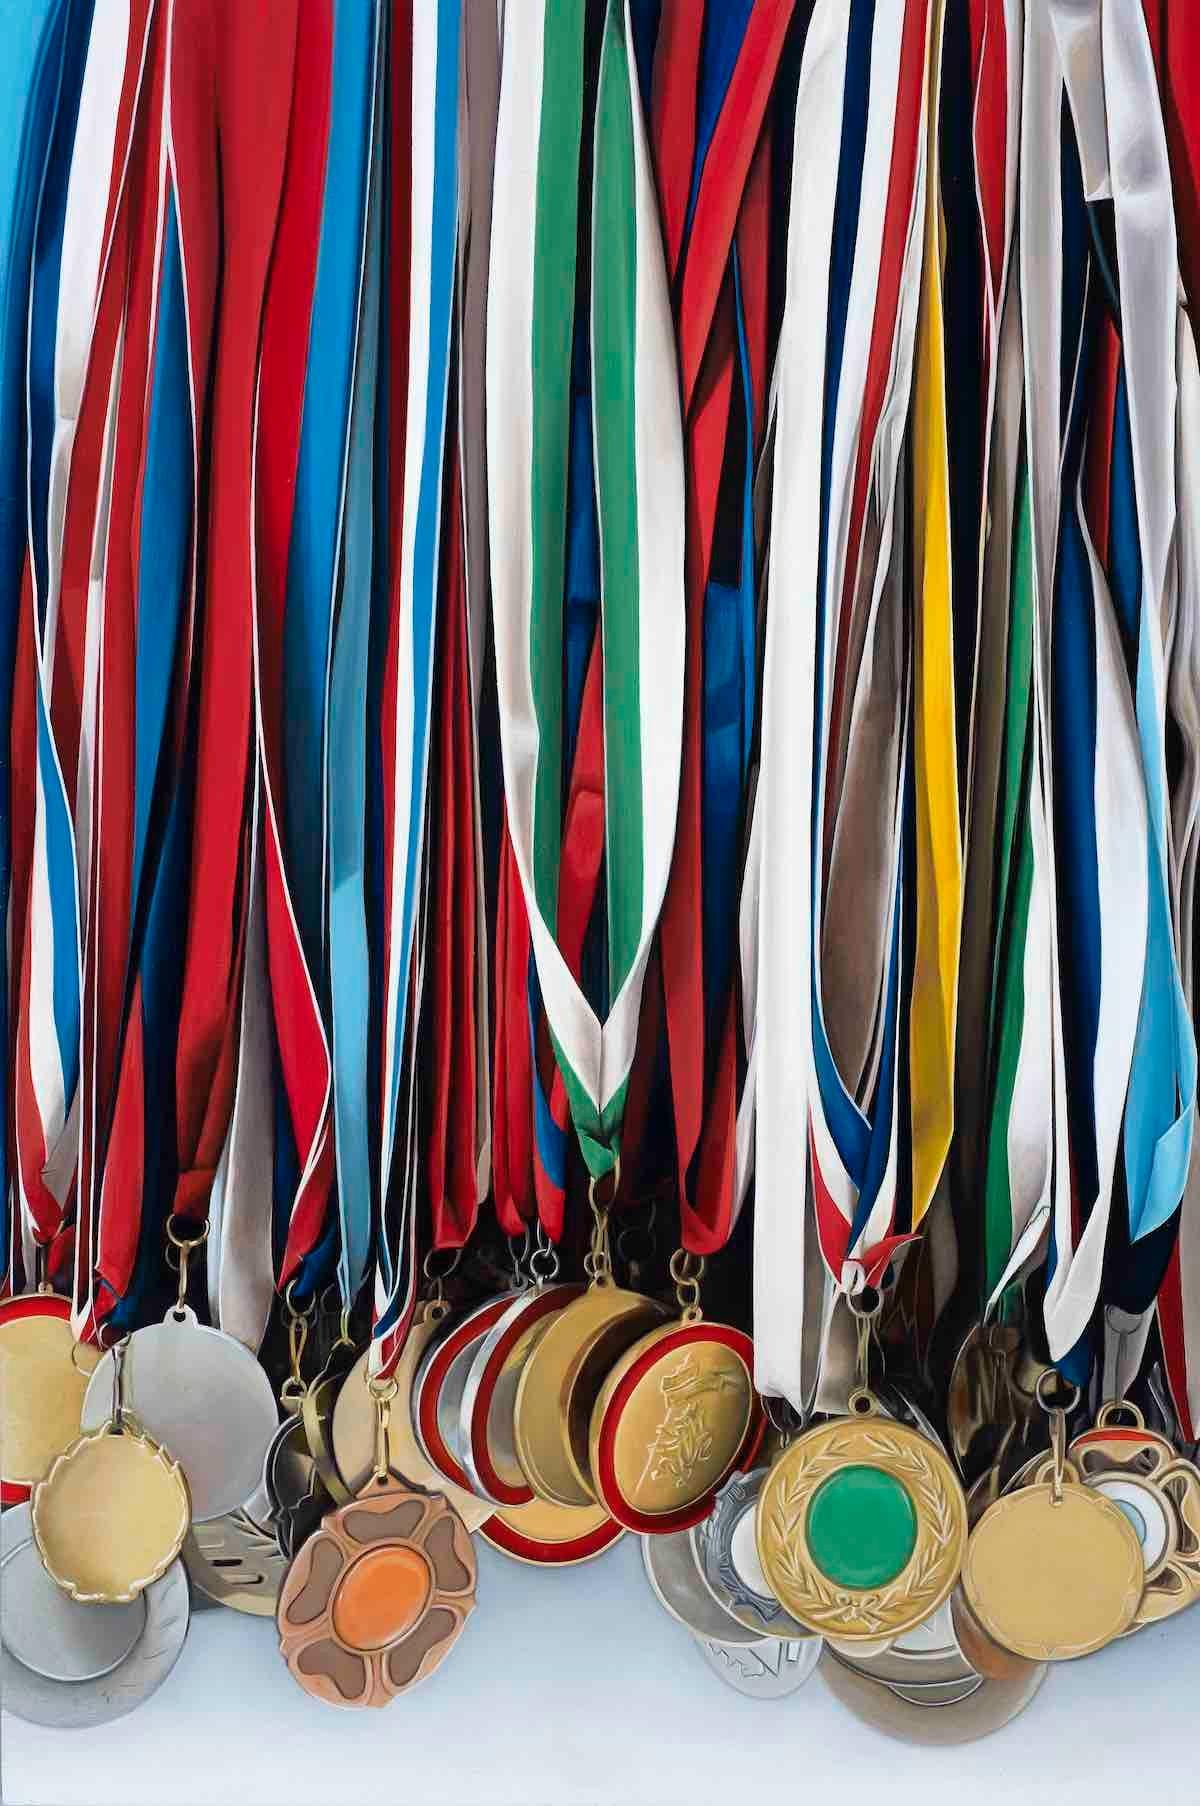 Medley: Photorealistic Painting of Medals by Ian Robinson